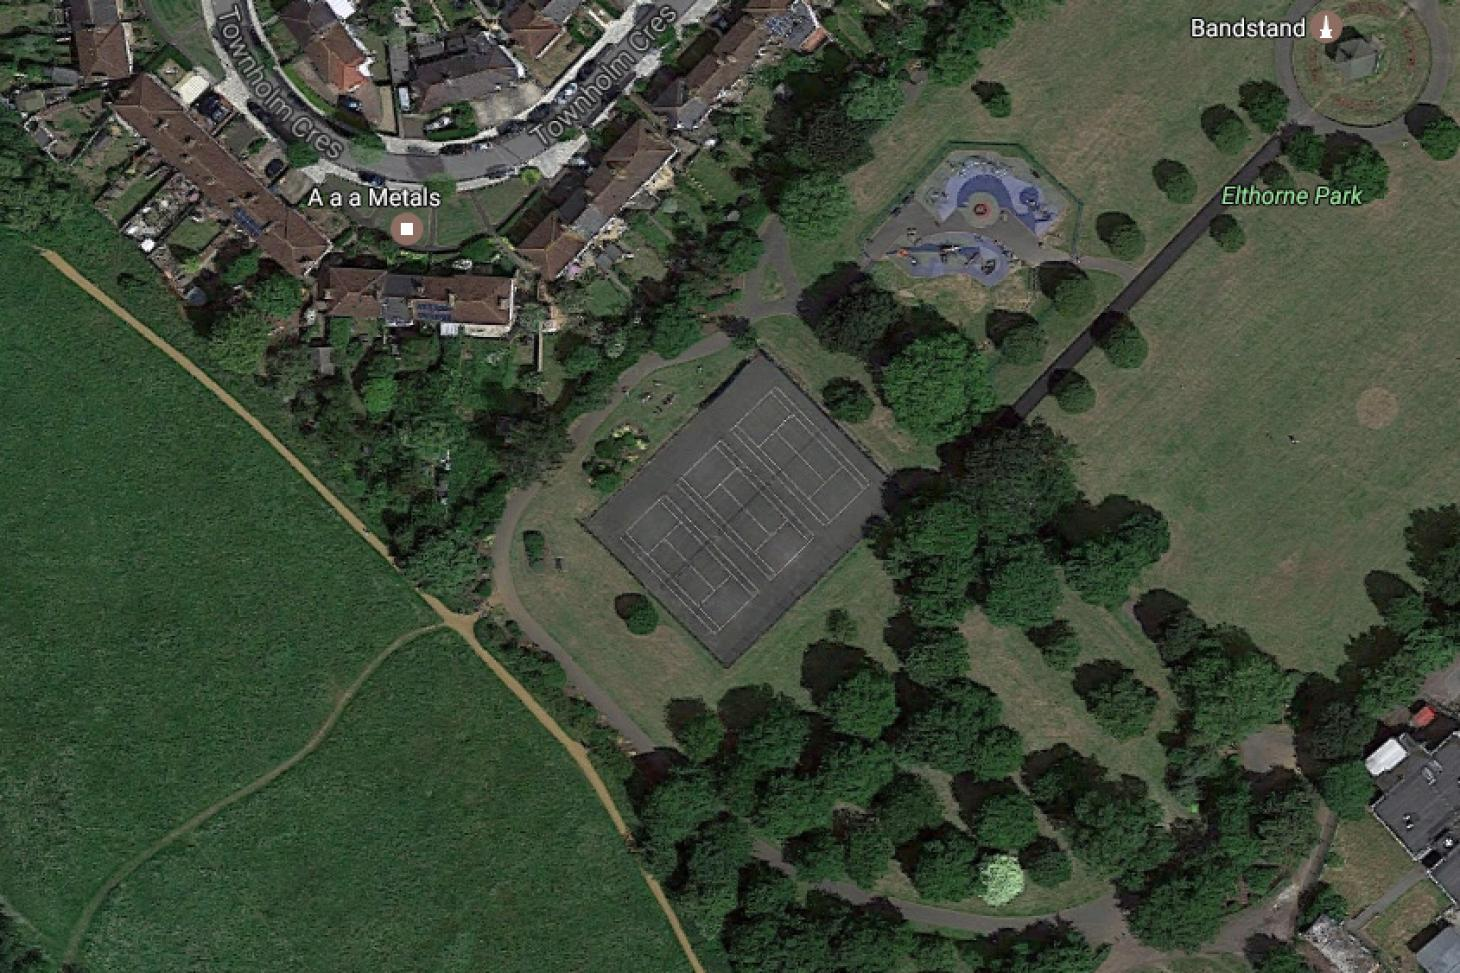 Elthorne Park Outdoor | Hard (macadam) tennis court